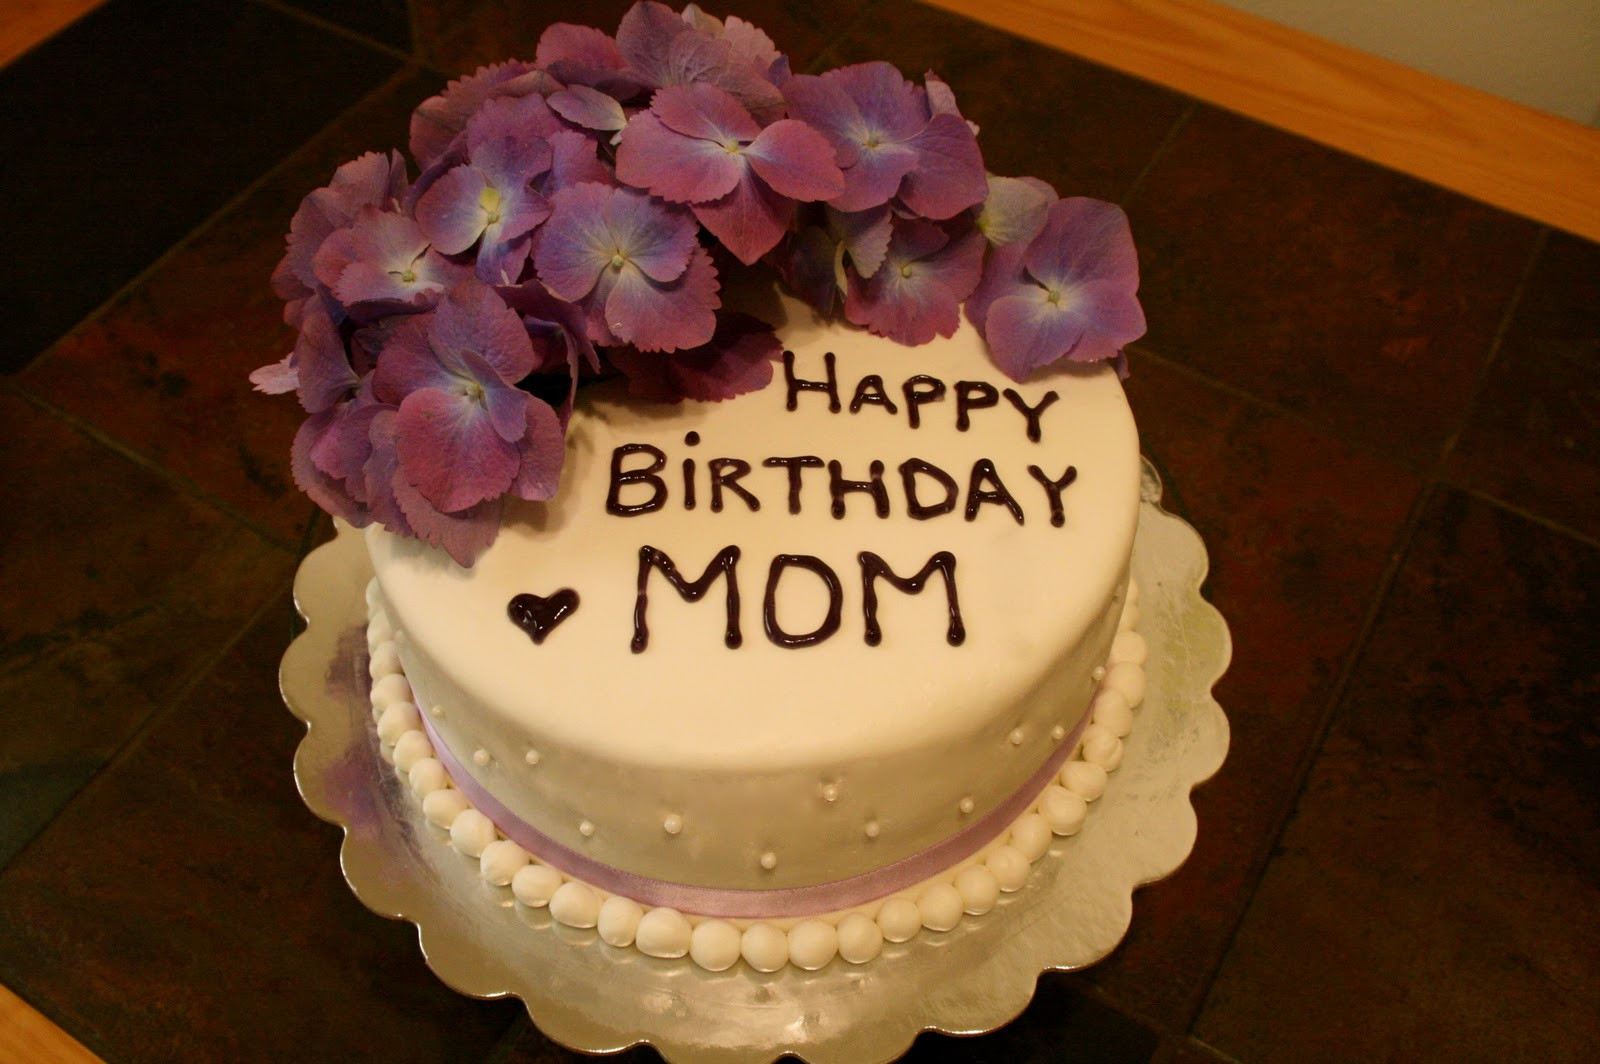 Best ideas about Happy Birthday Mom Cake . Save or Pin Half Baked Happy Birthday Mom Now.